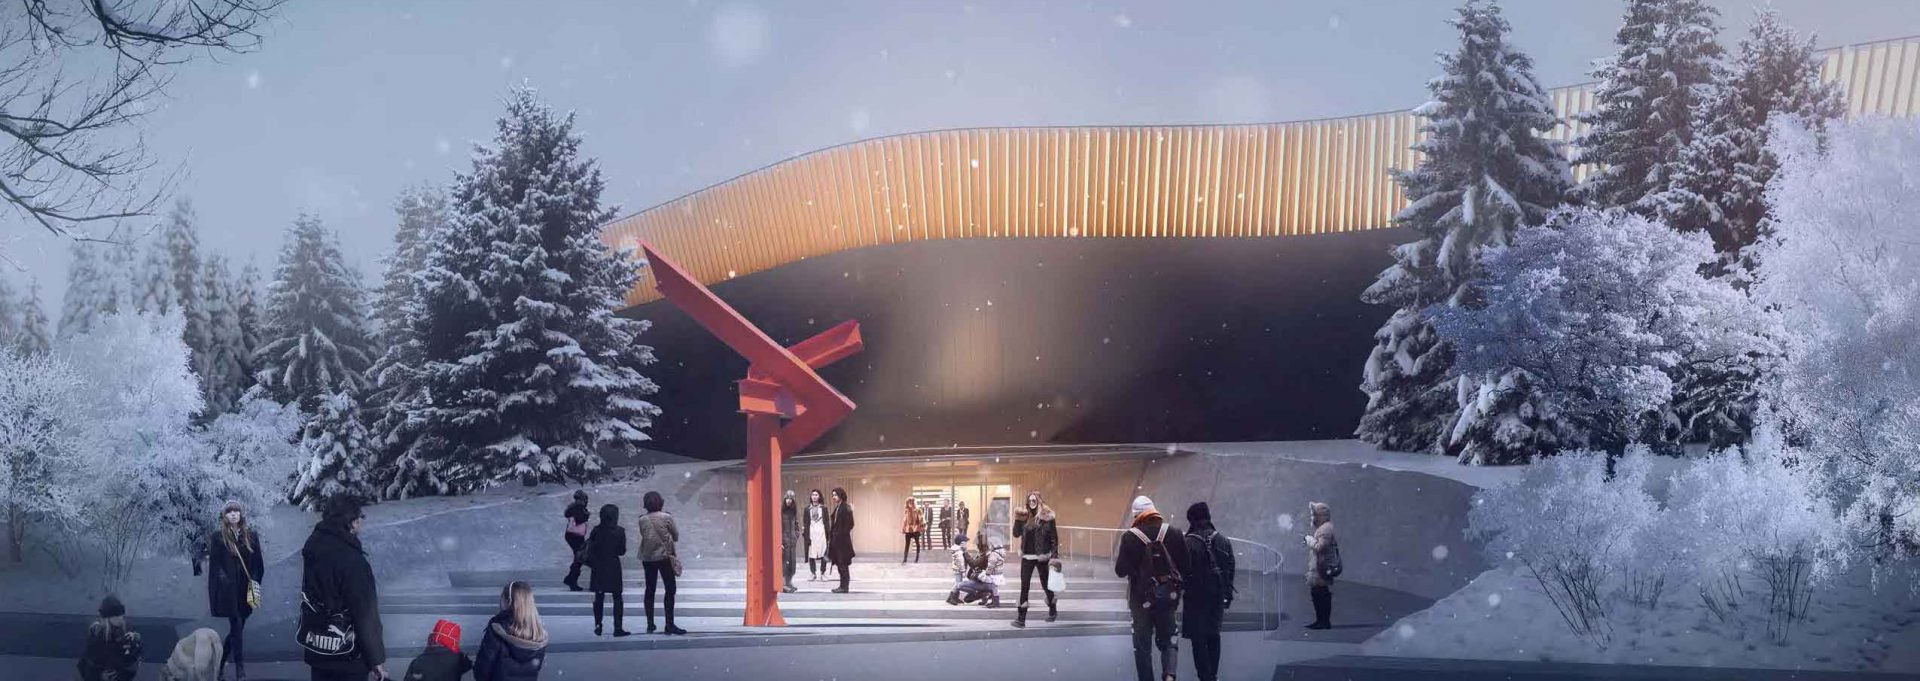 Winter rendering of new waterfront art gallery